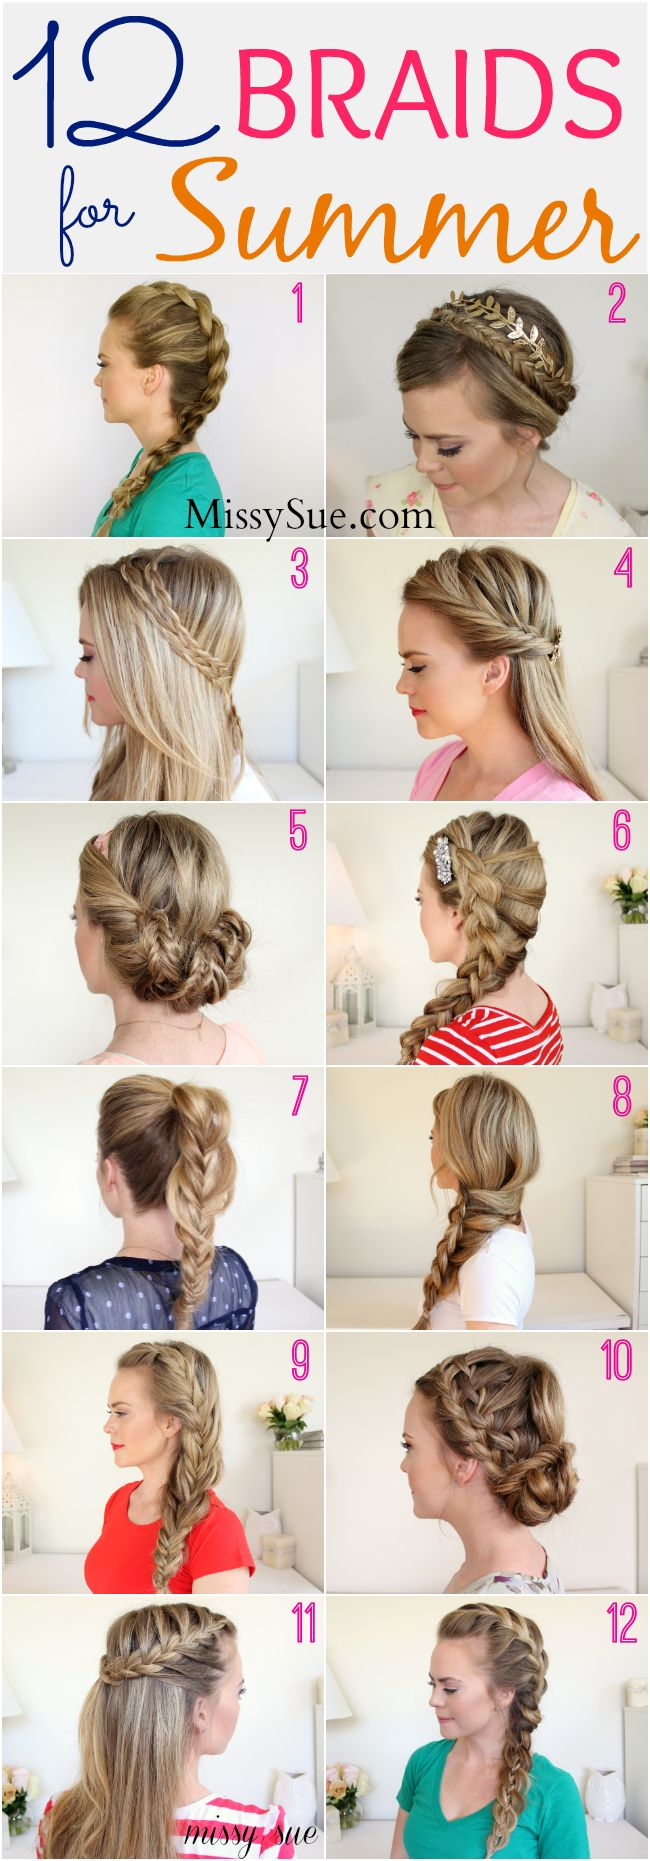 12 Braids for Summer #braids